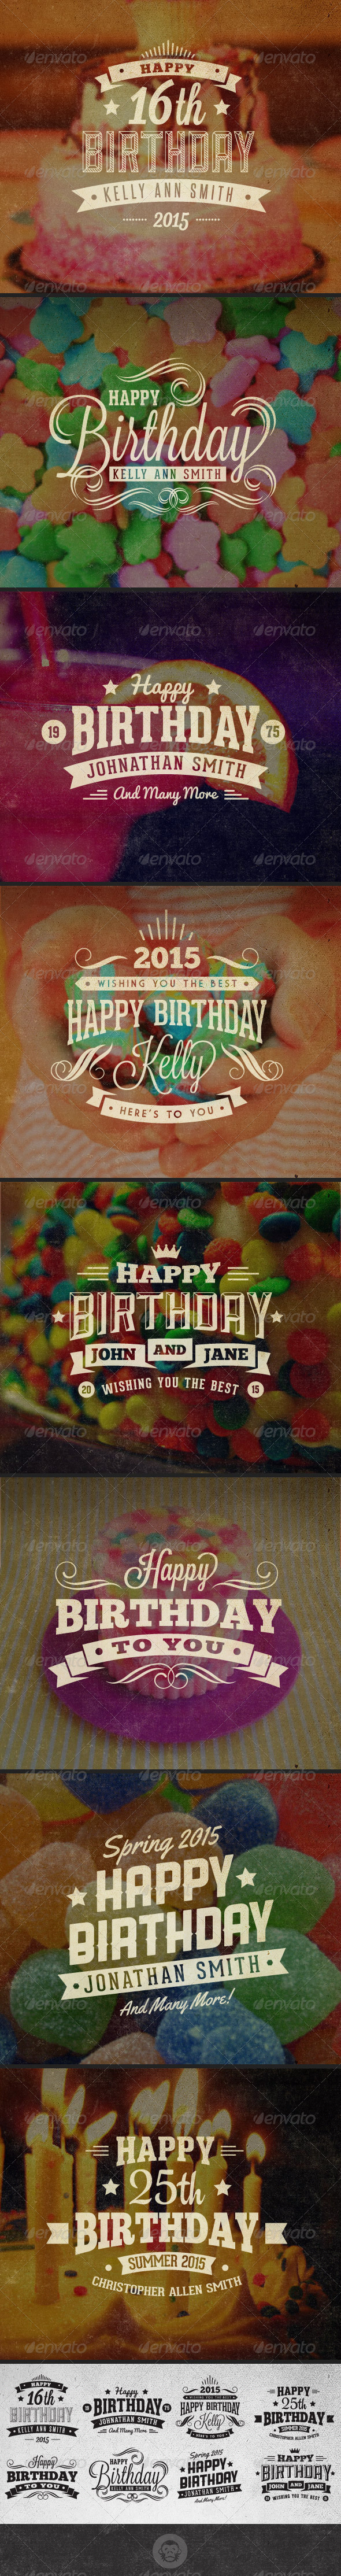 GraphicRiver Happy Birthday Vintage Labels and Badges 6539419